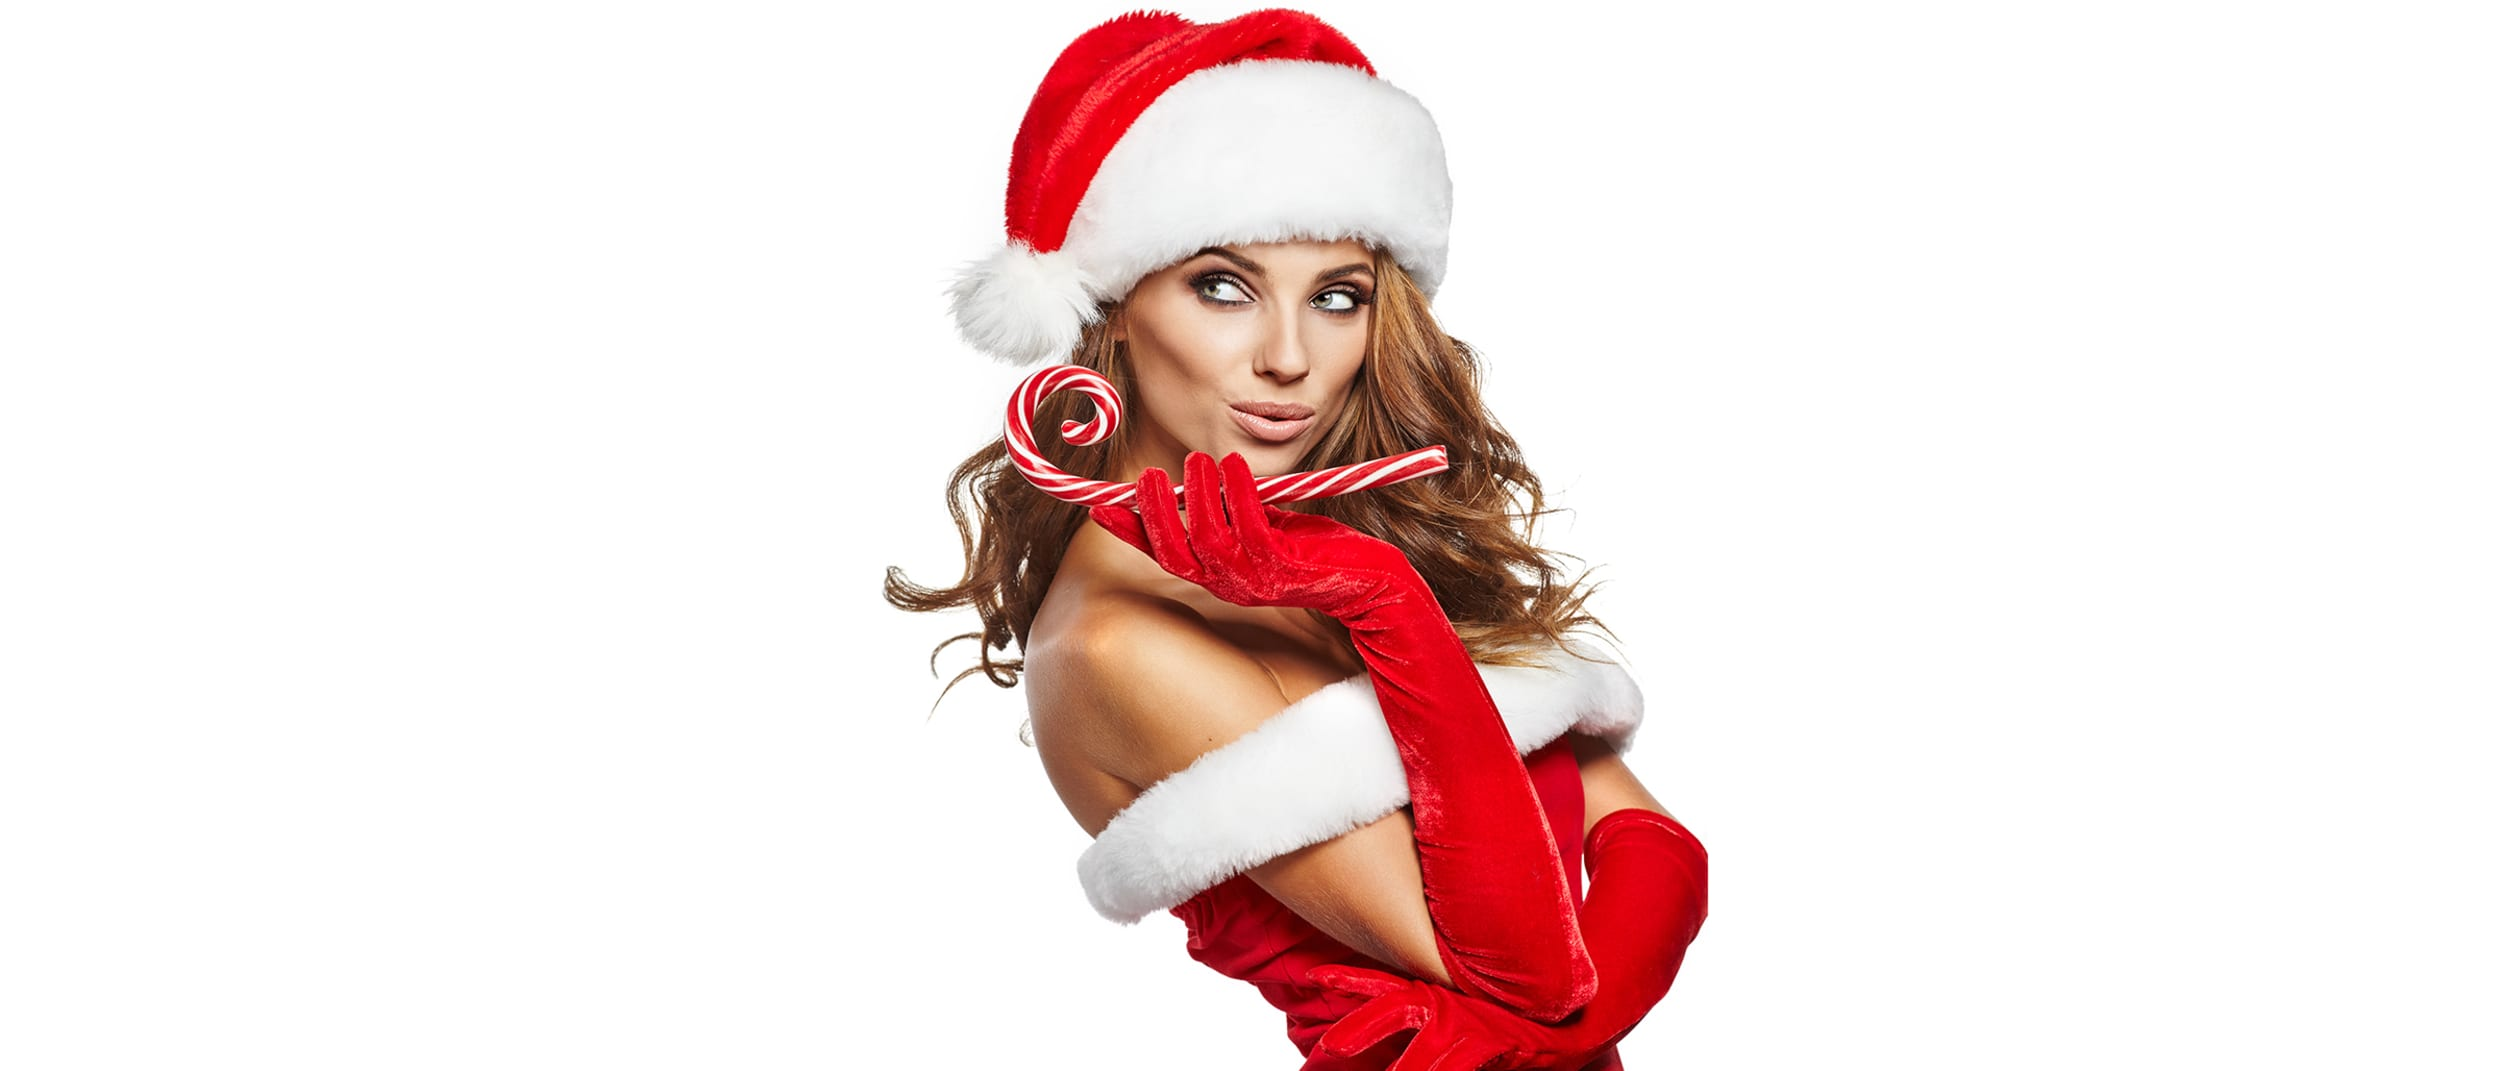 Nirvana Beauty Laser Clinics: Christmas deals and packages